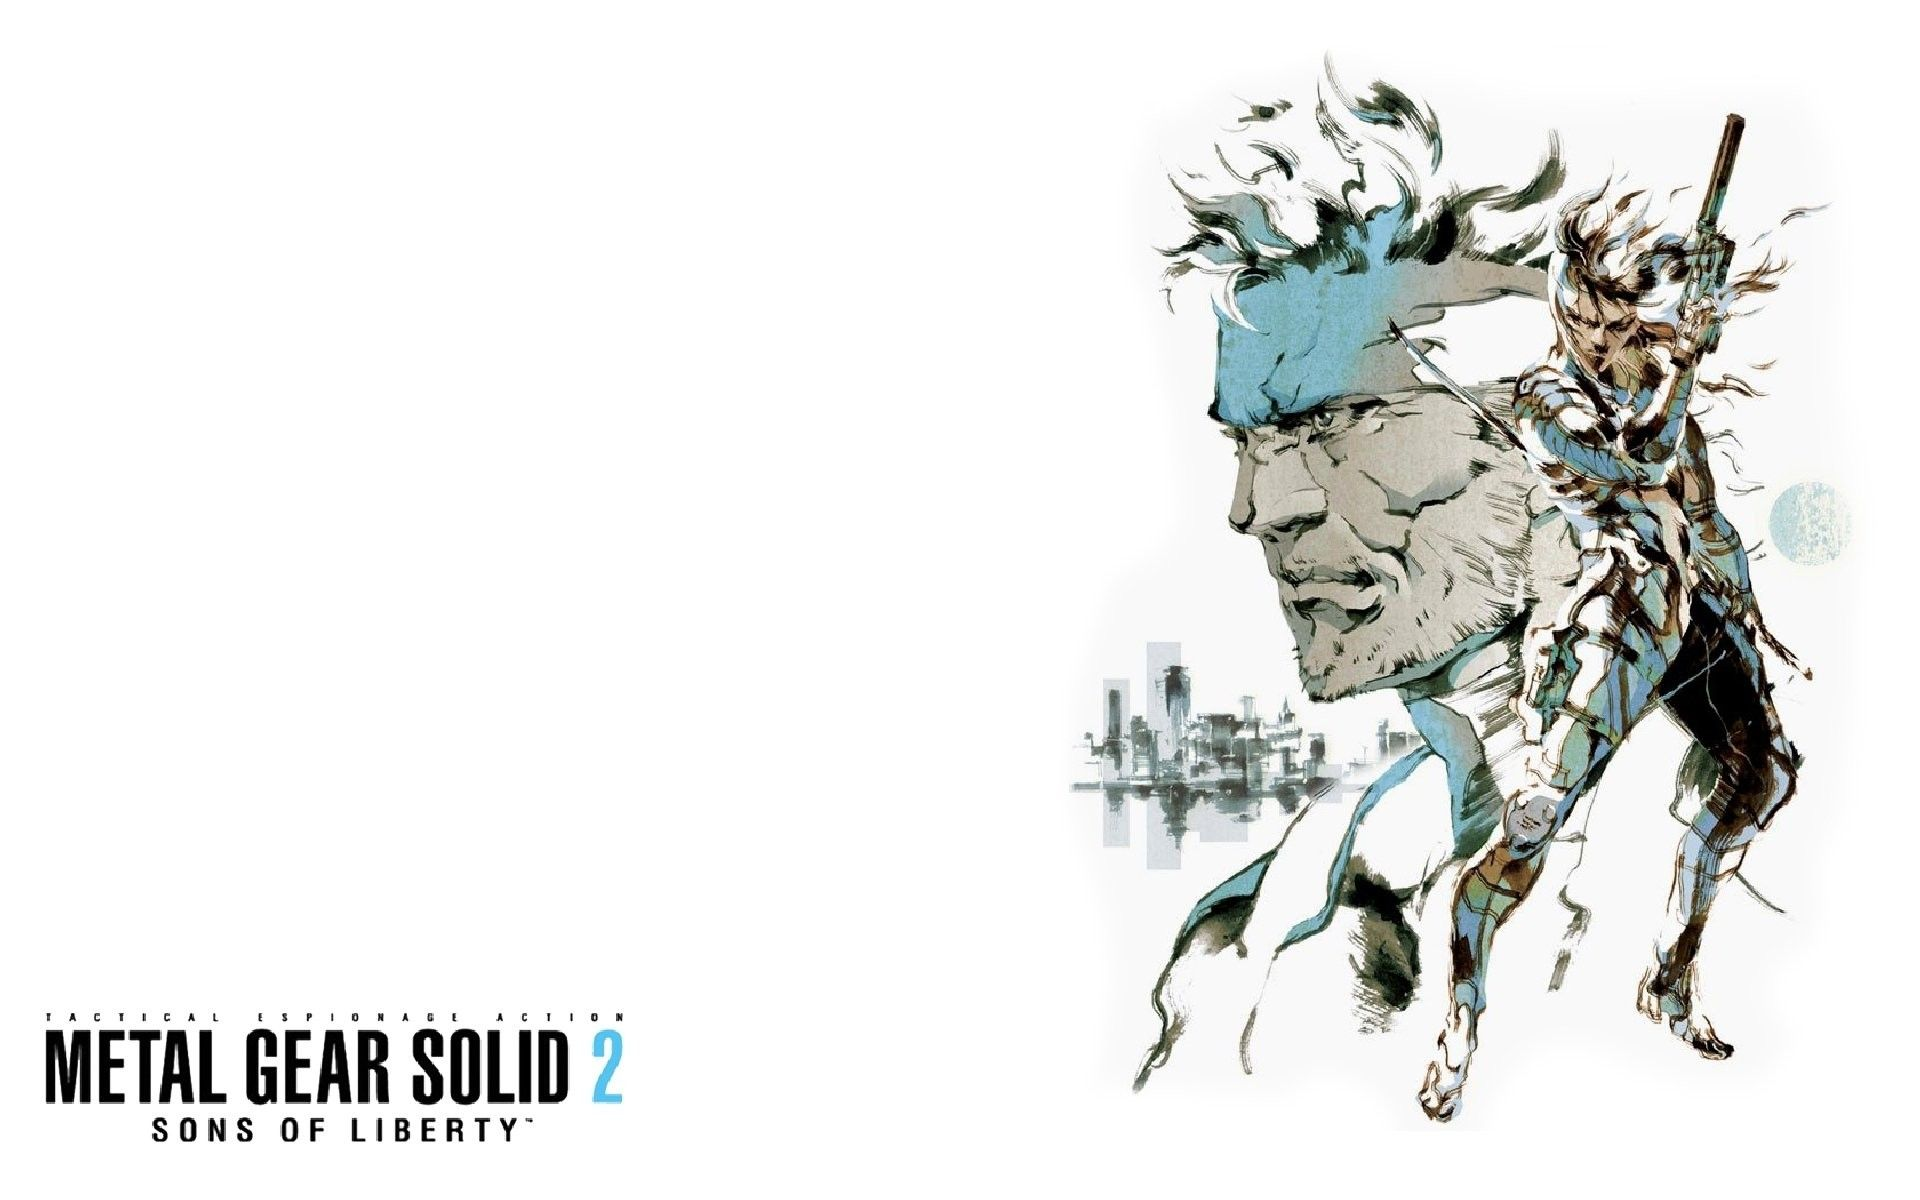 Metal Gear Solid 2: Sons of Liberty Wallpapers - Top Free Metal Gear Solid 2:  Sons of Liberty Backgrounds - WallpaperAccess